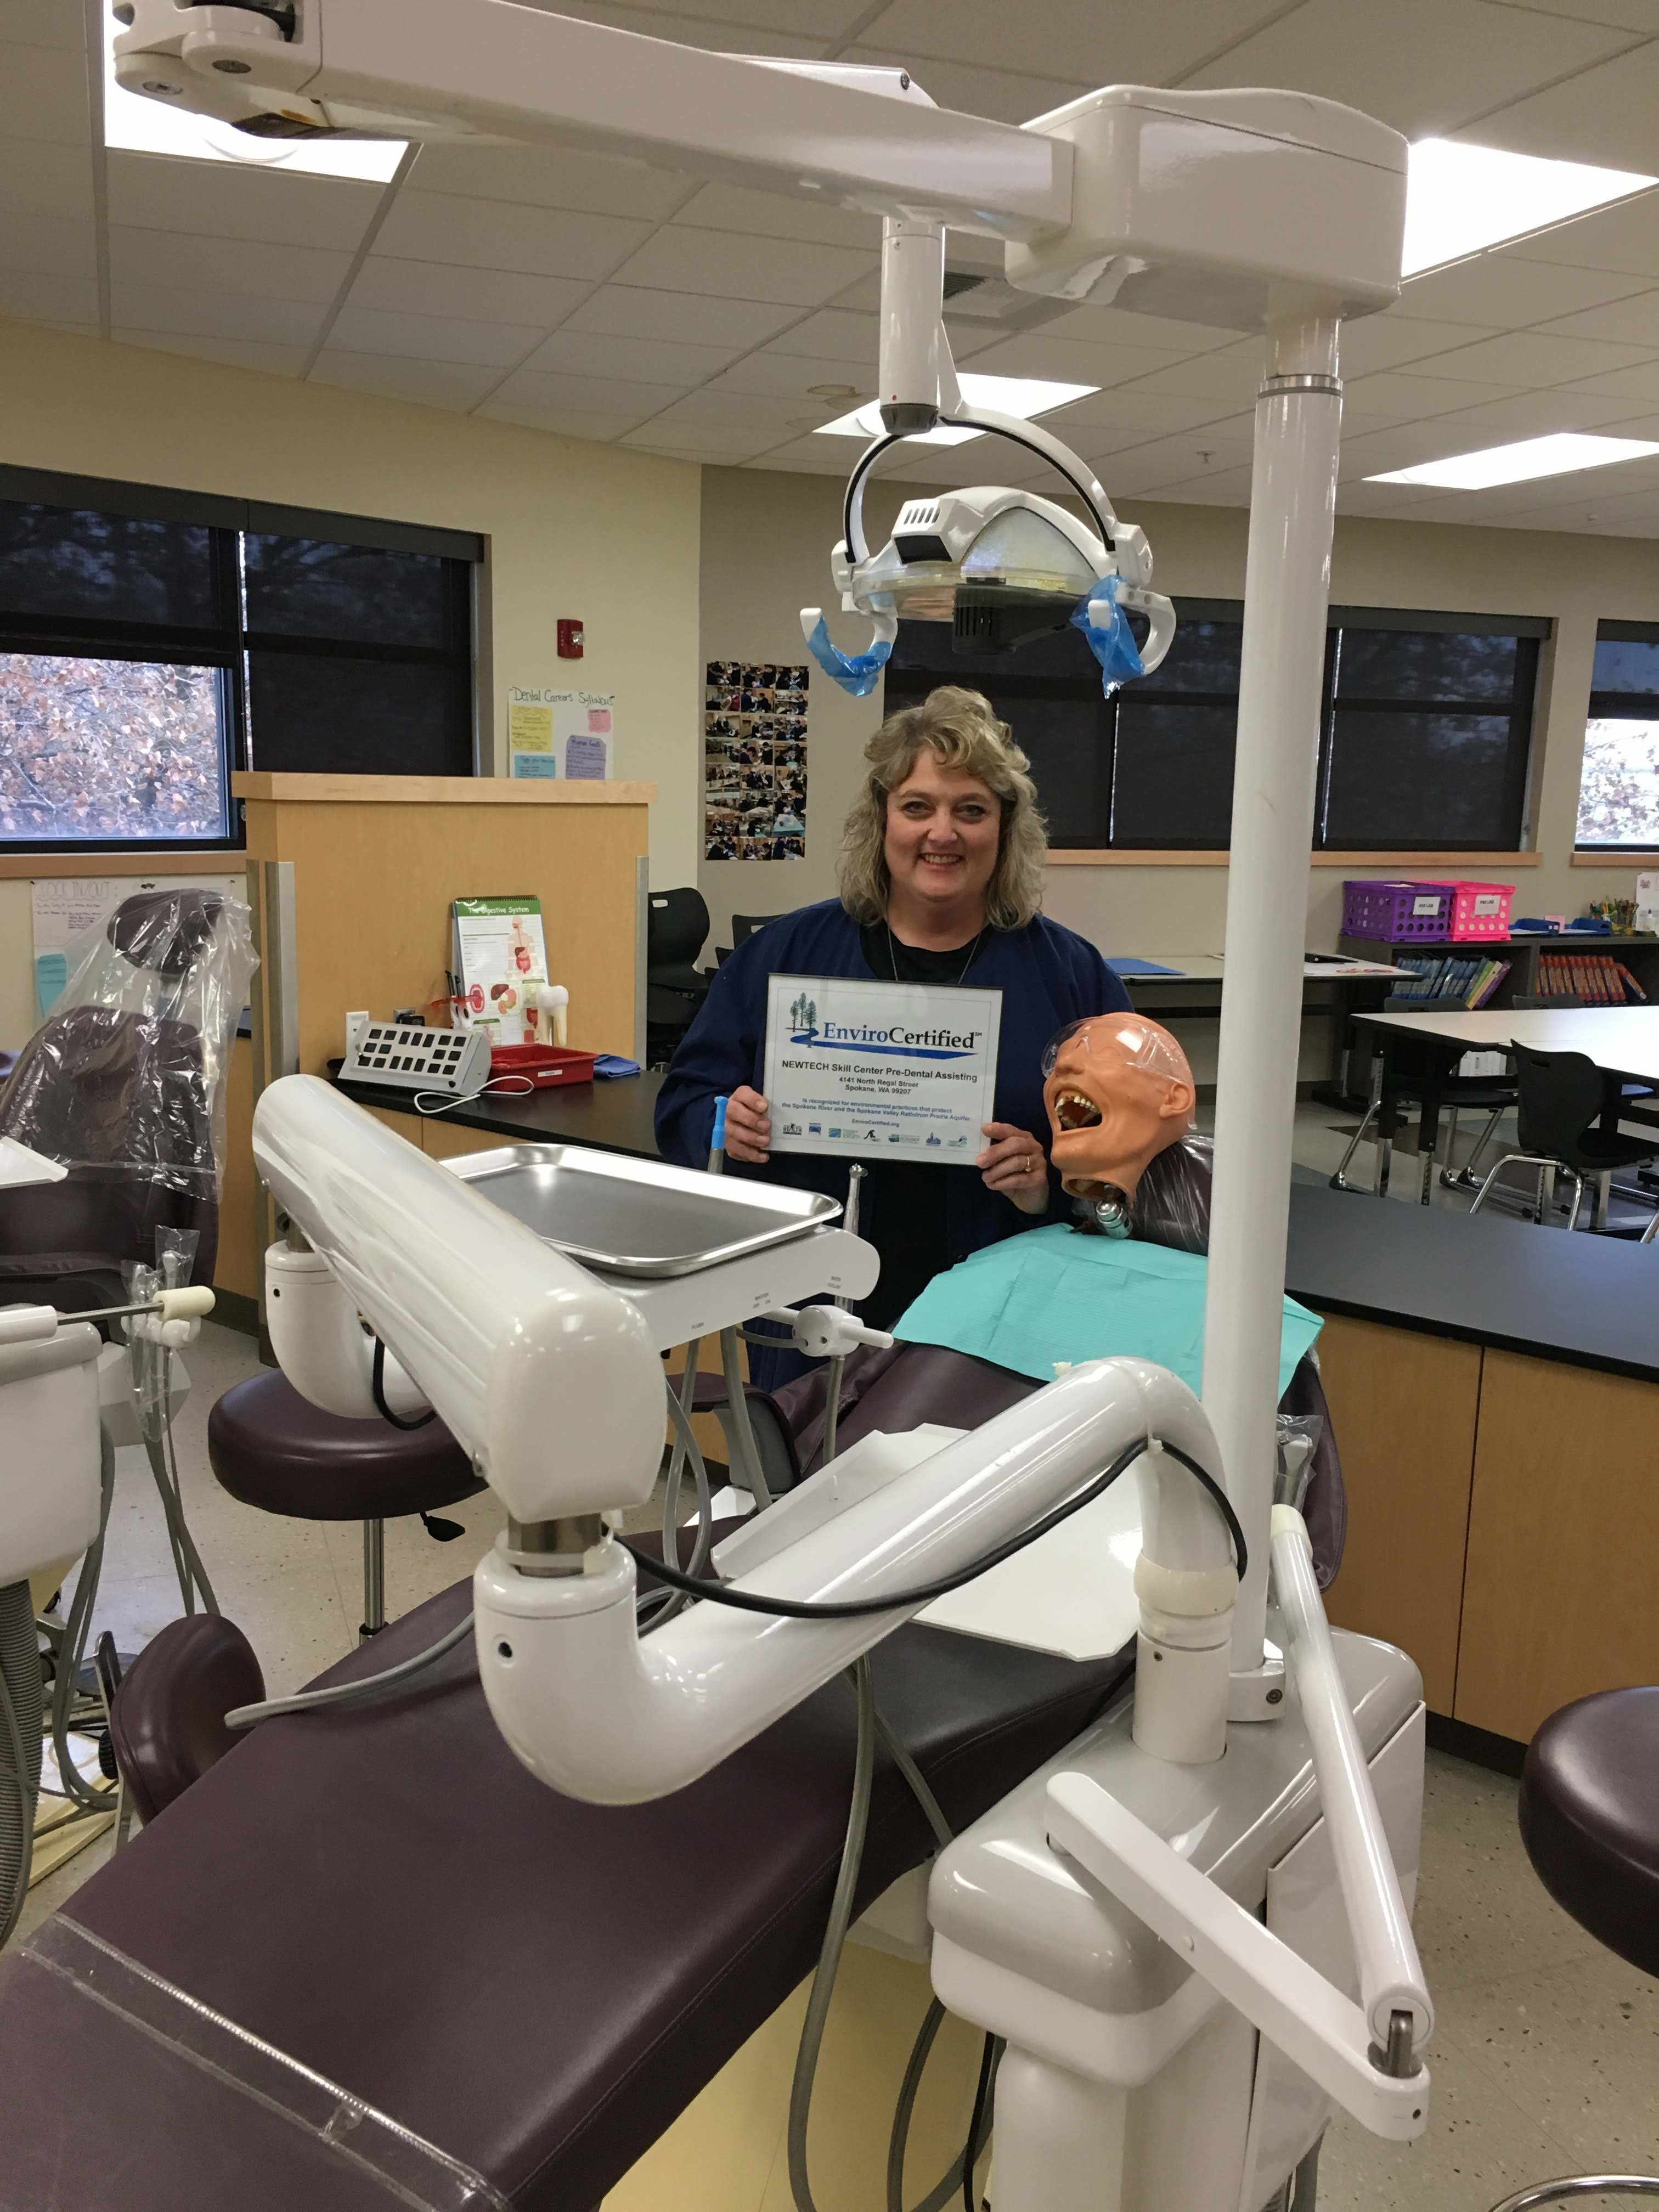 Newtech Skill Center Dental Careers Envirocertified